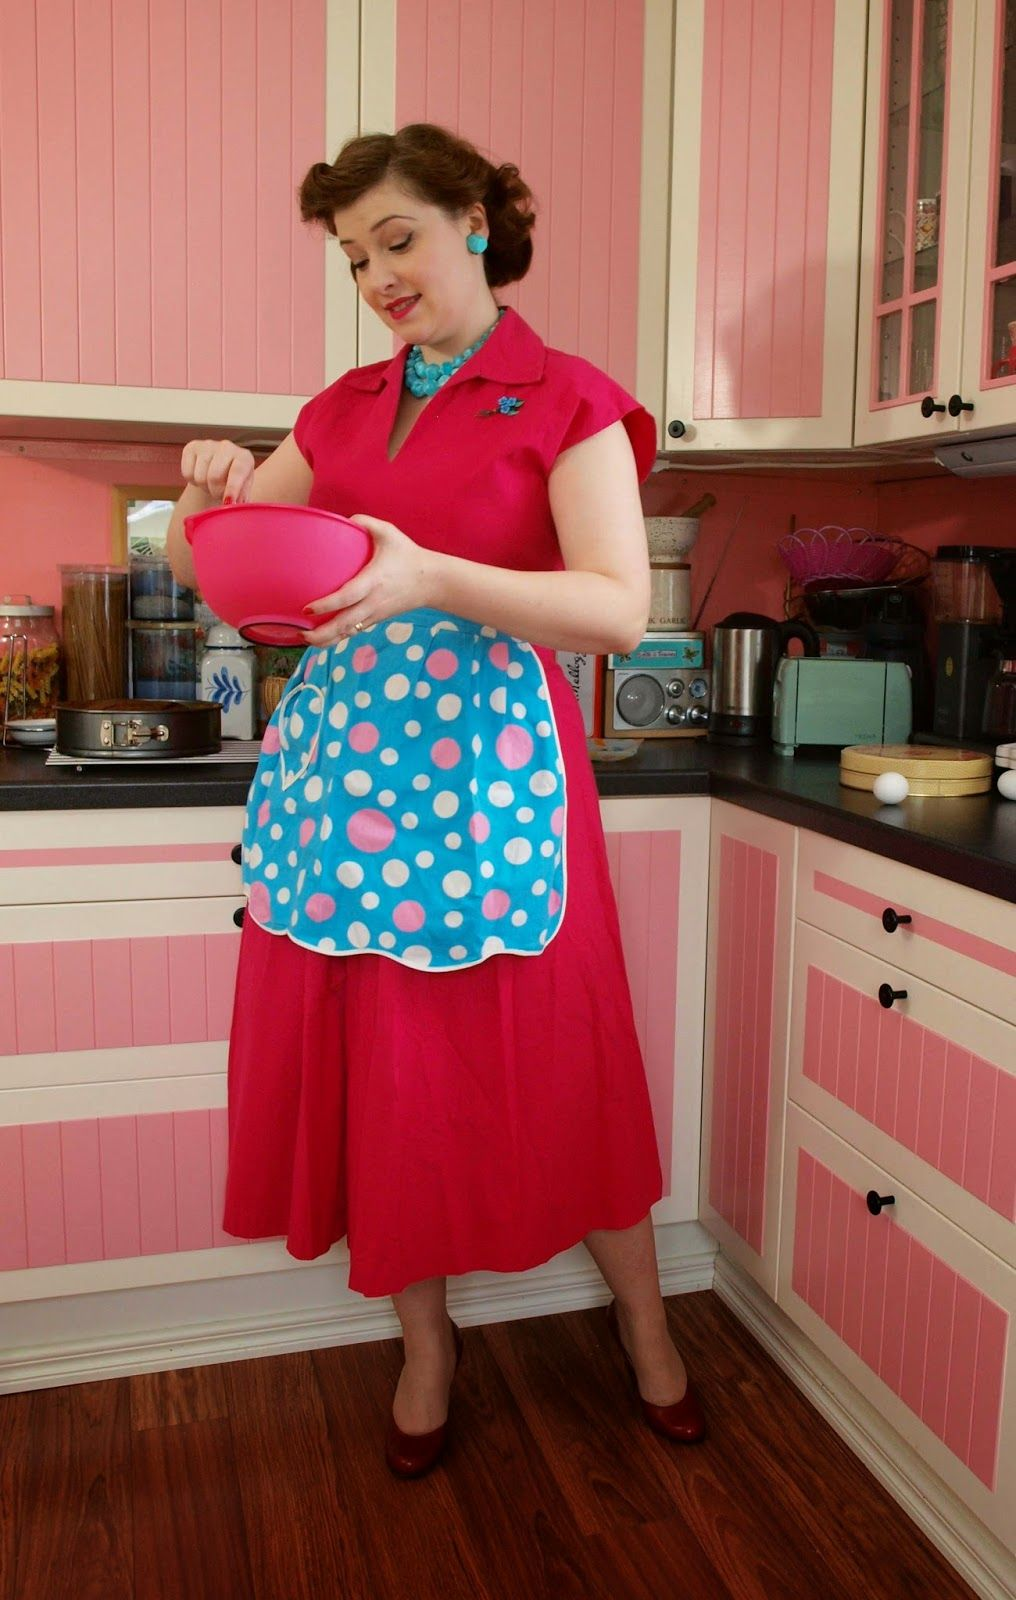 Vintage 50 S Housewife Apron Pink Kitchen Baking Dress Red